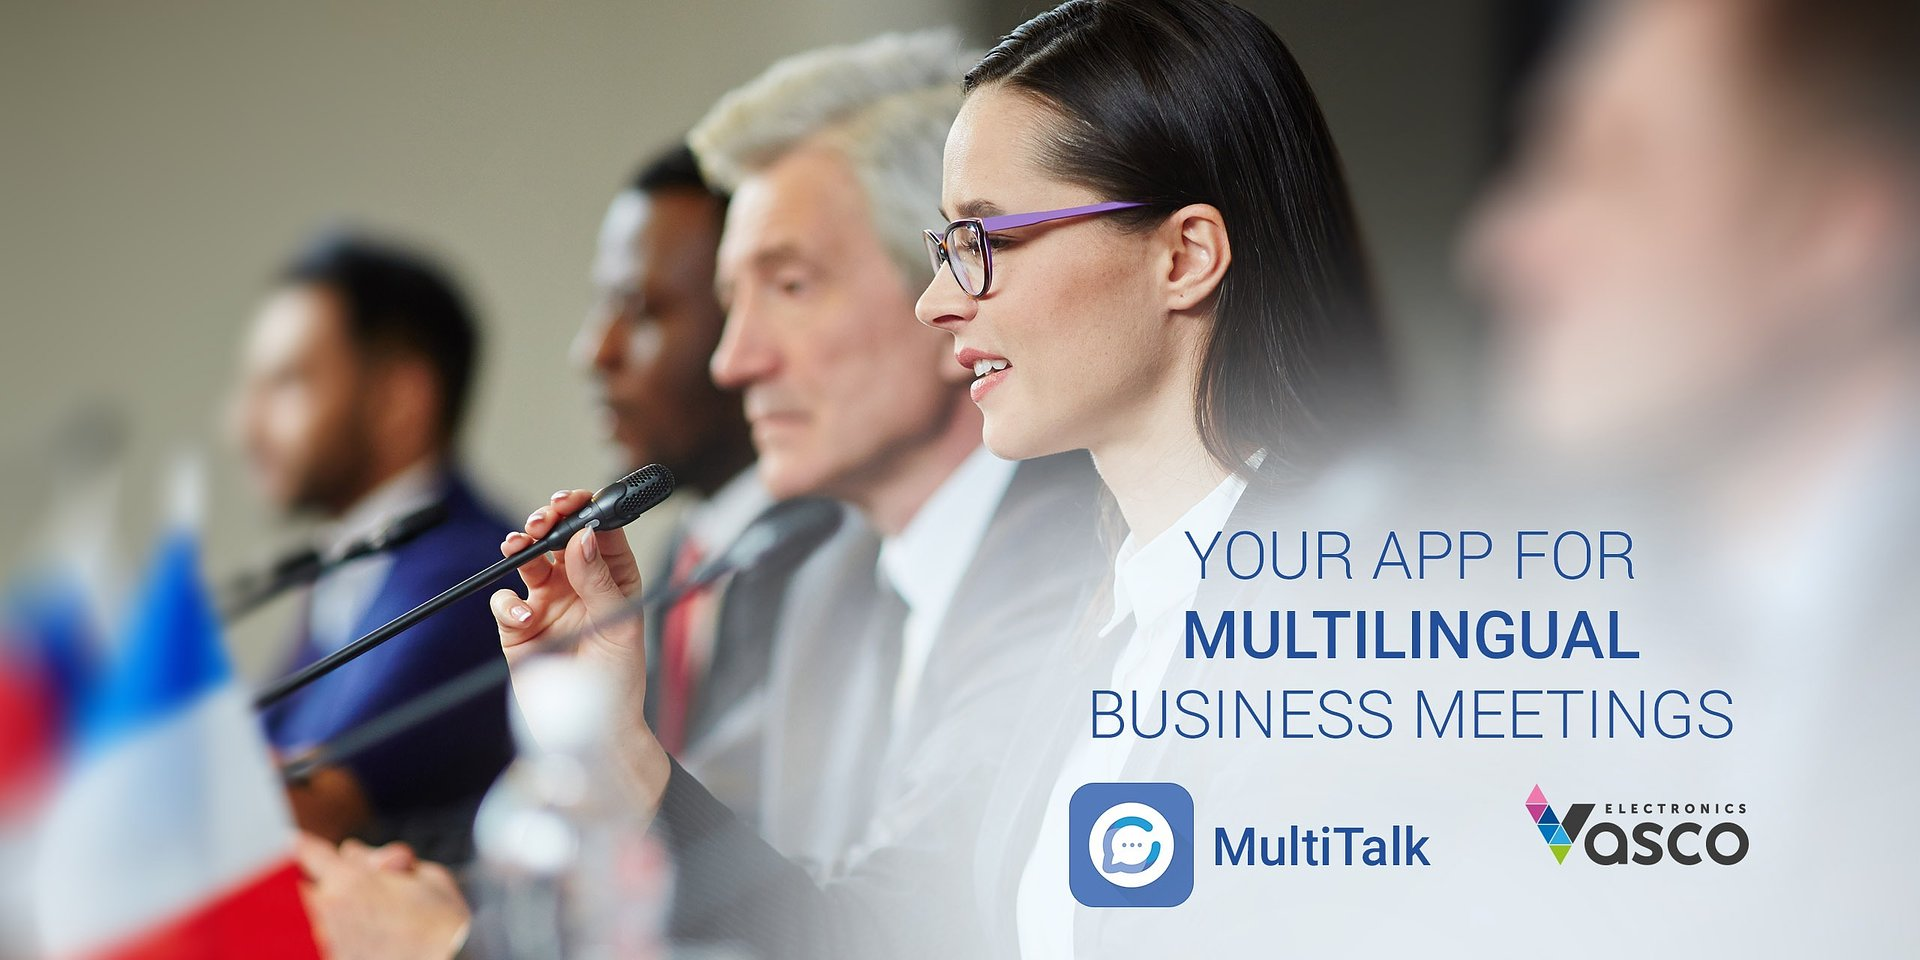 MultiTalk app makes real-time translations a reality in multilingual meetings